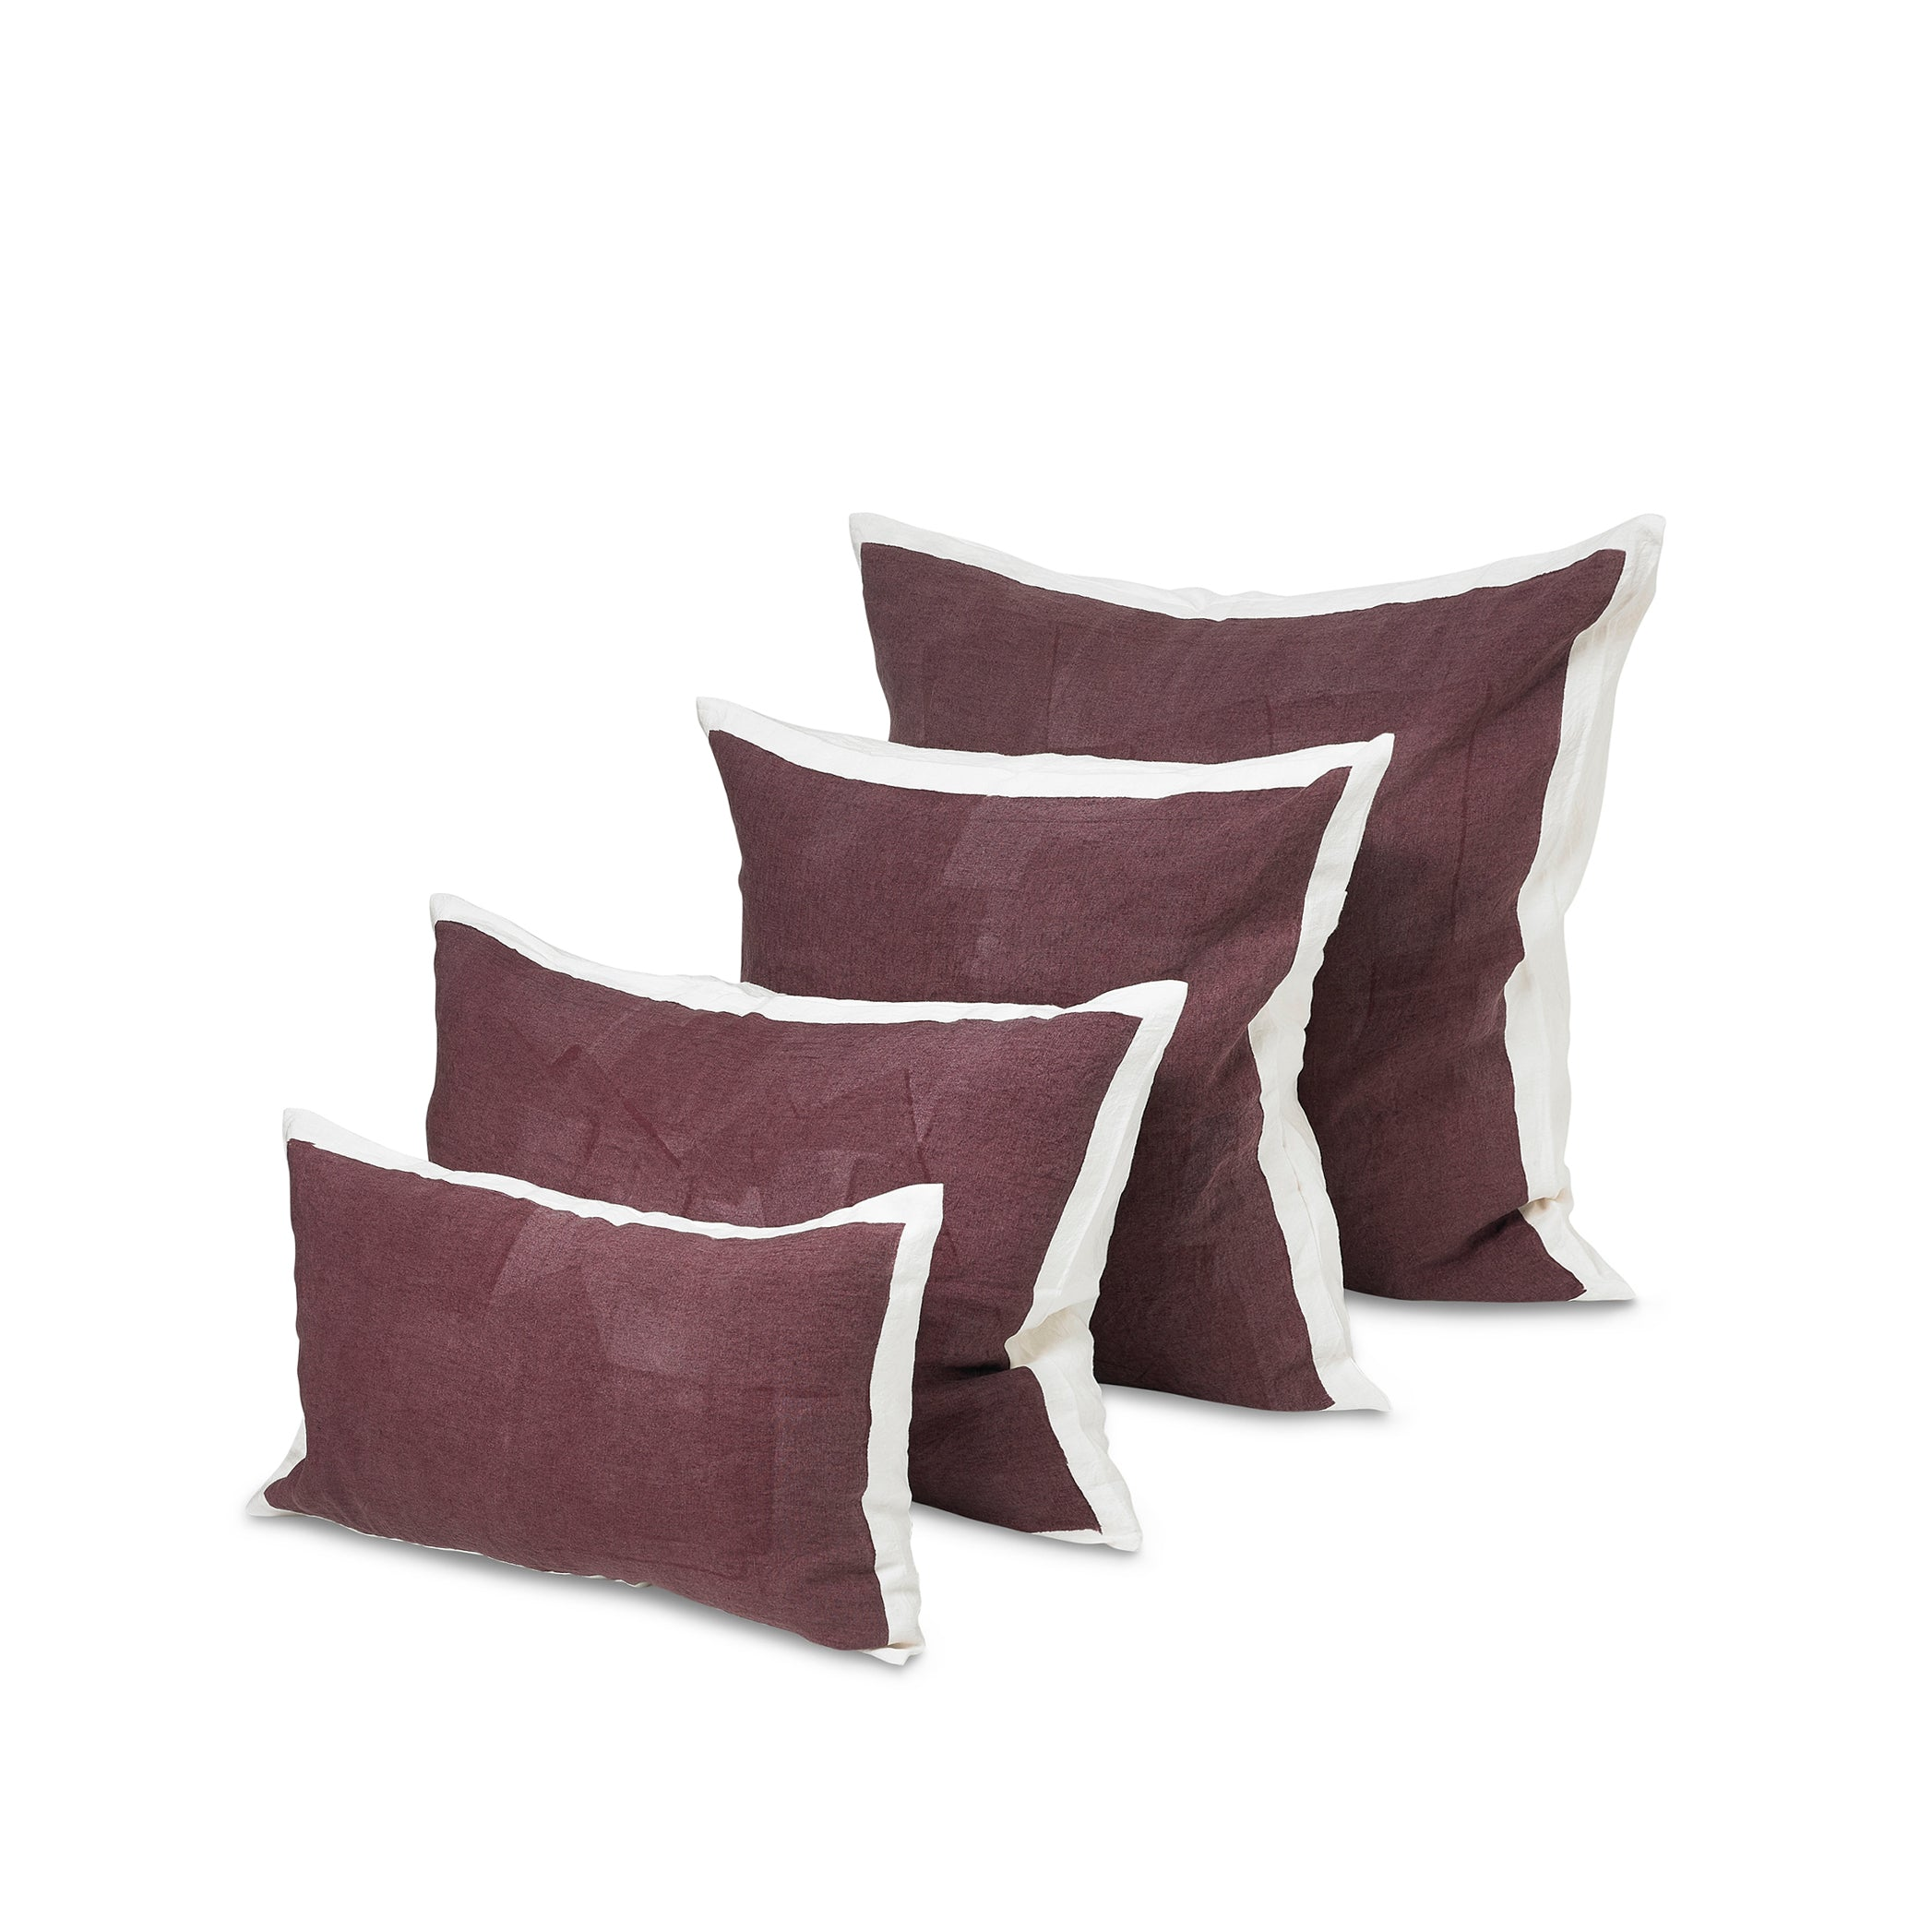 Hand Painted Linen Cushion Cover in Grape, 60cm x 60cm